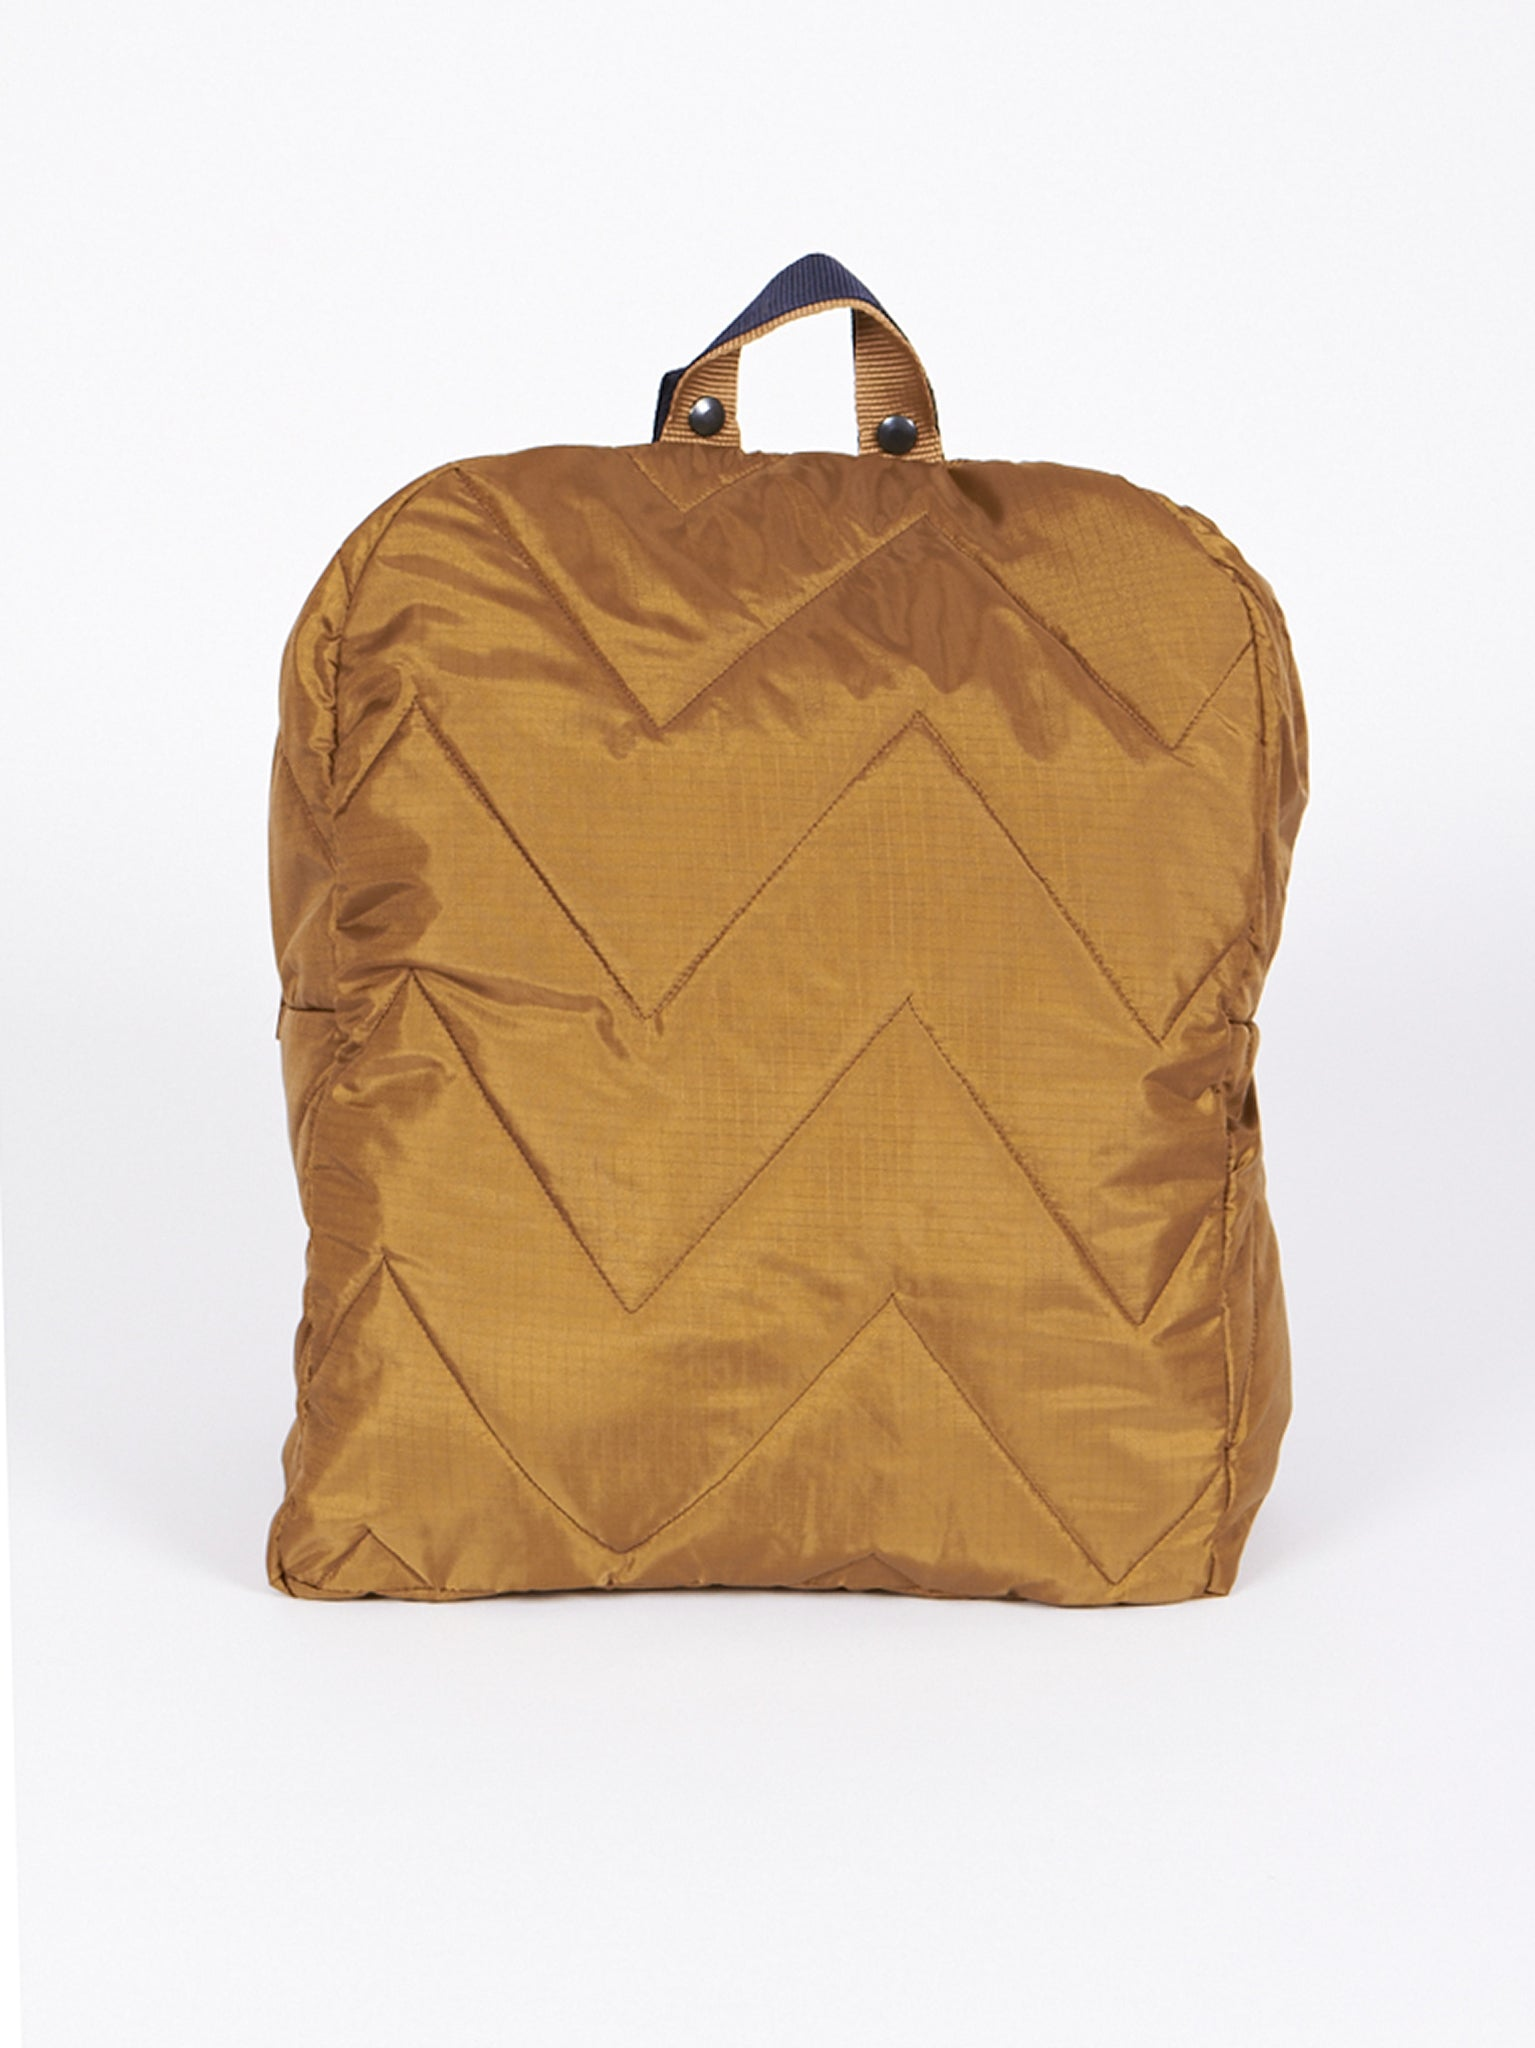 Ali back-pack, tan